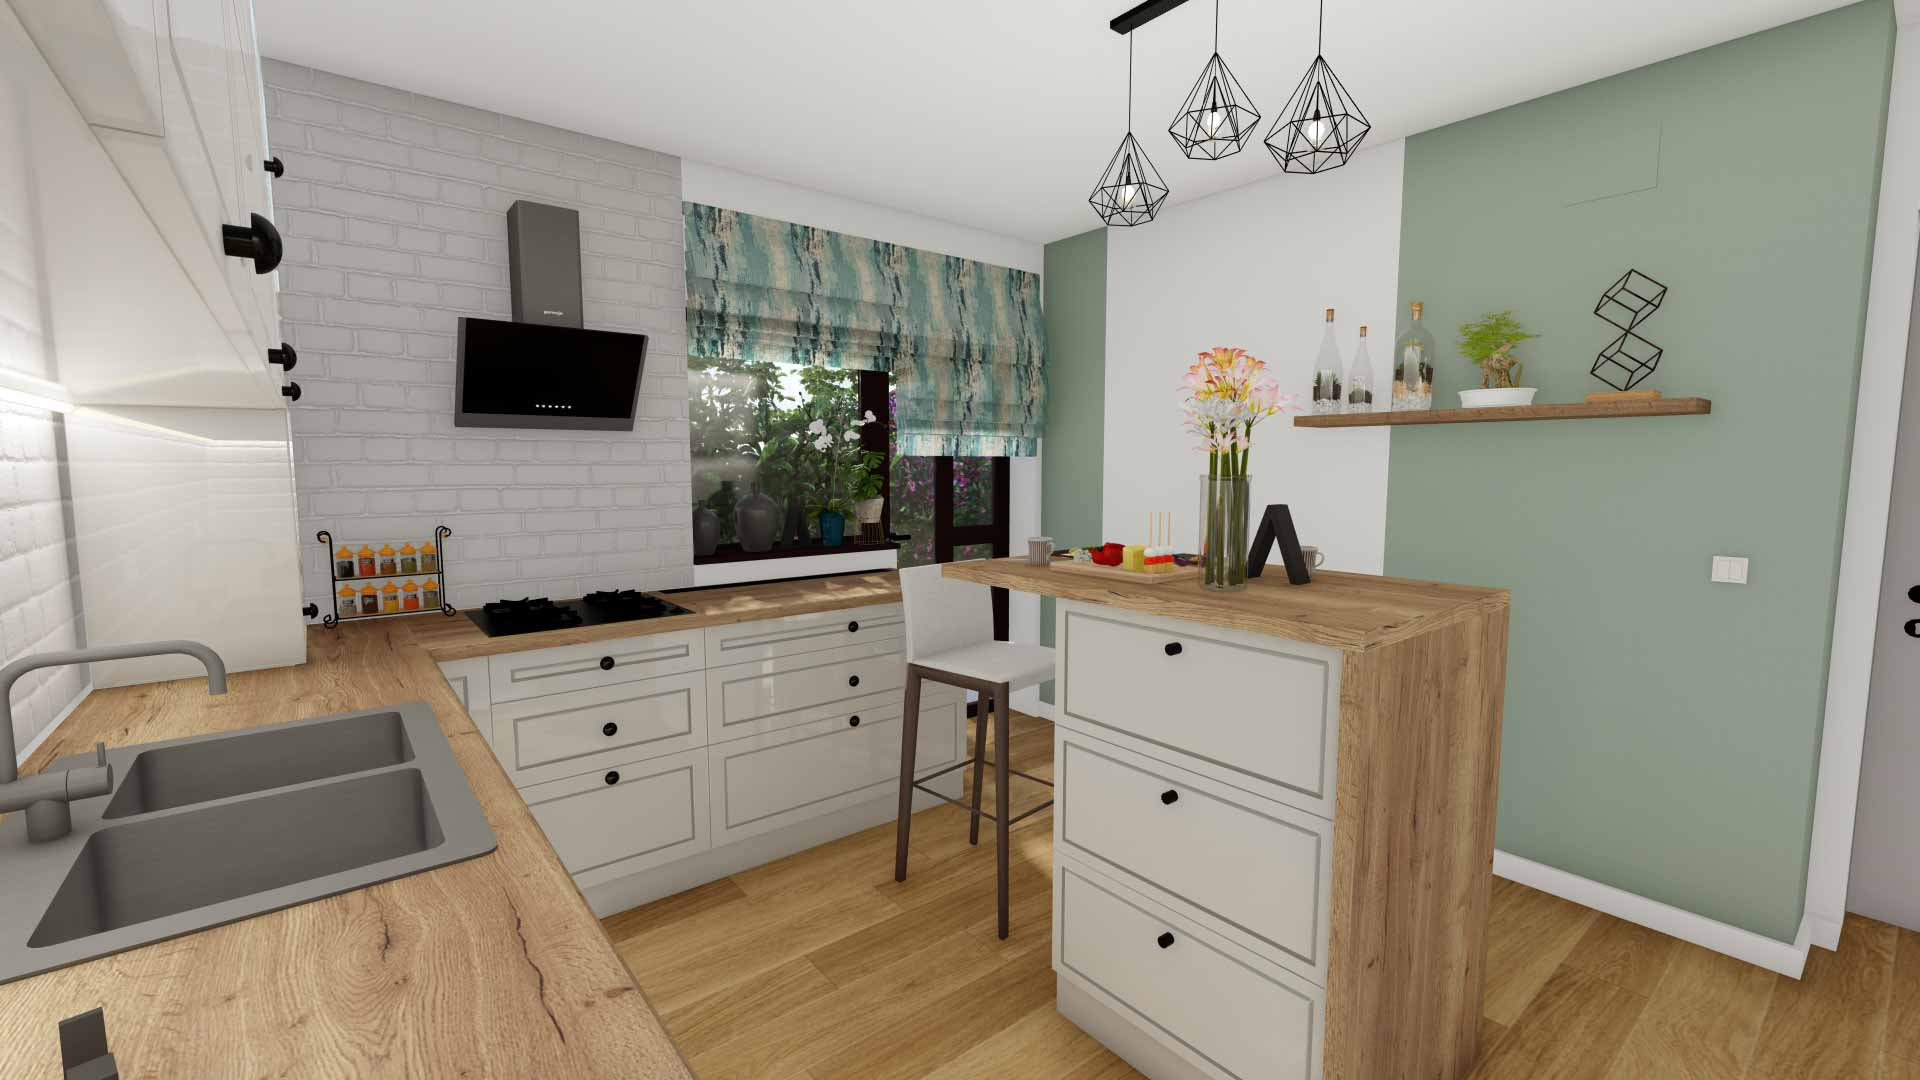 5 Materials For Finishing The Kitchen Walls Acolada Design